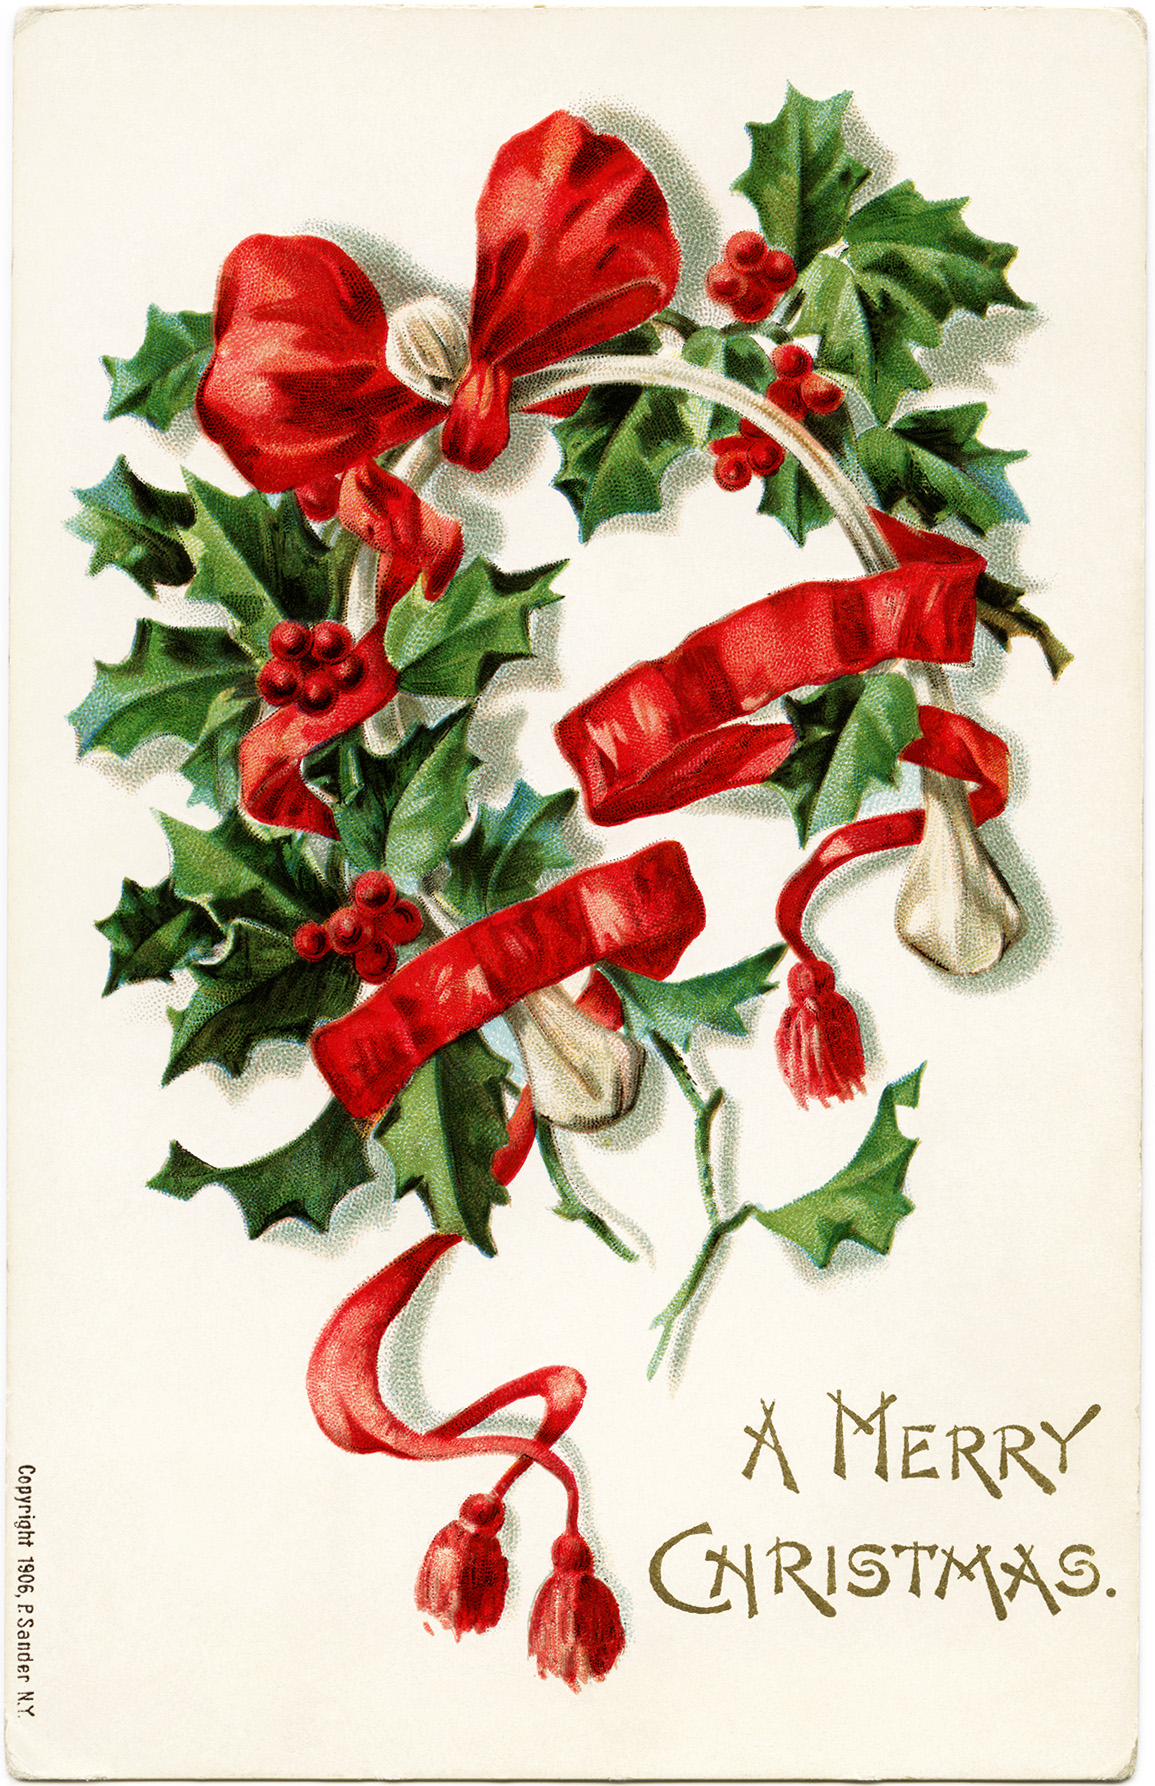 antique horseshoe card, printable Christmas graphic, old Christmas postcard, wishbone holly berries image, free vintage Christmas clipart